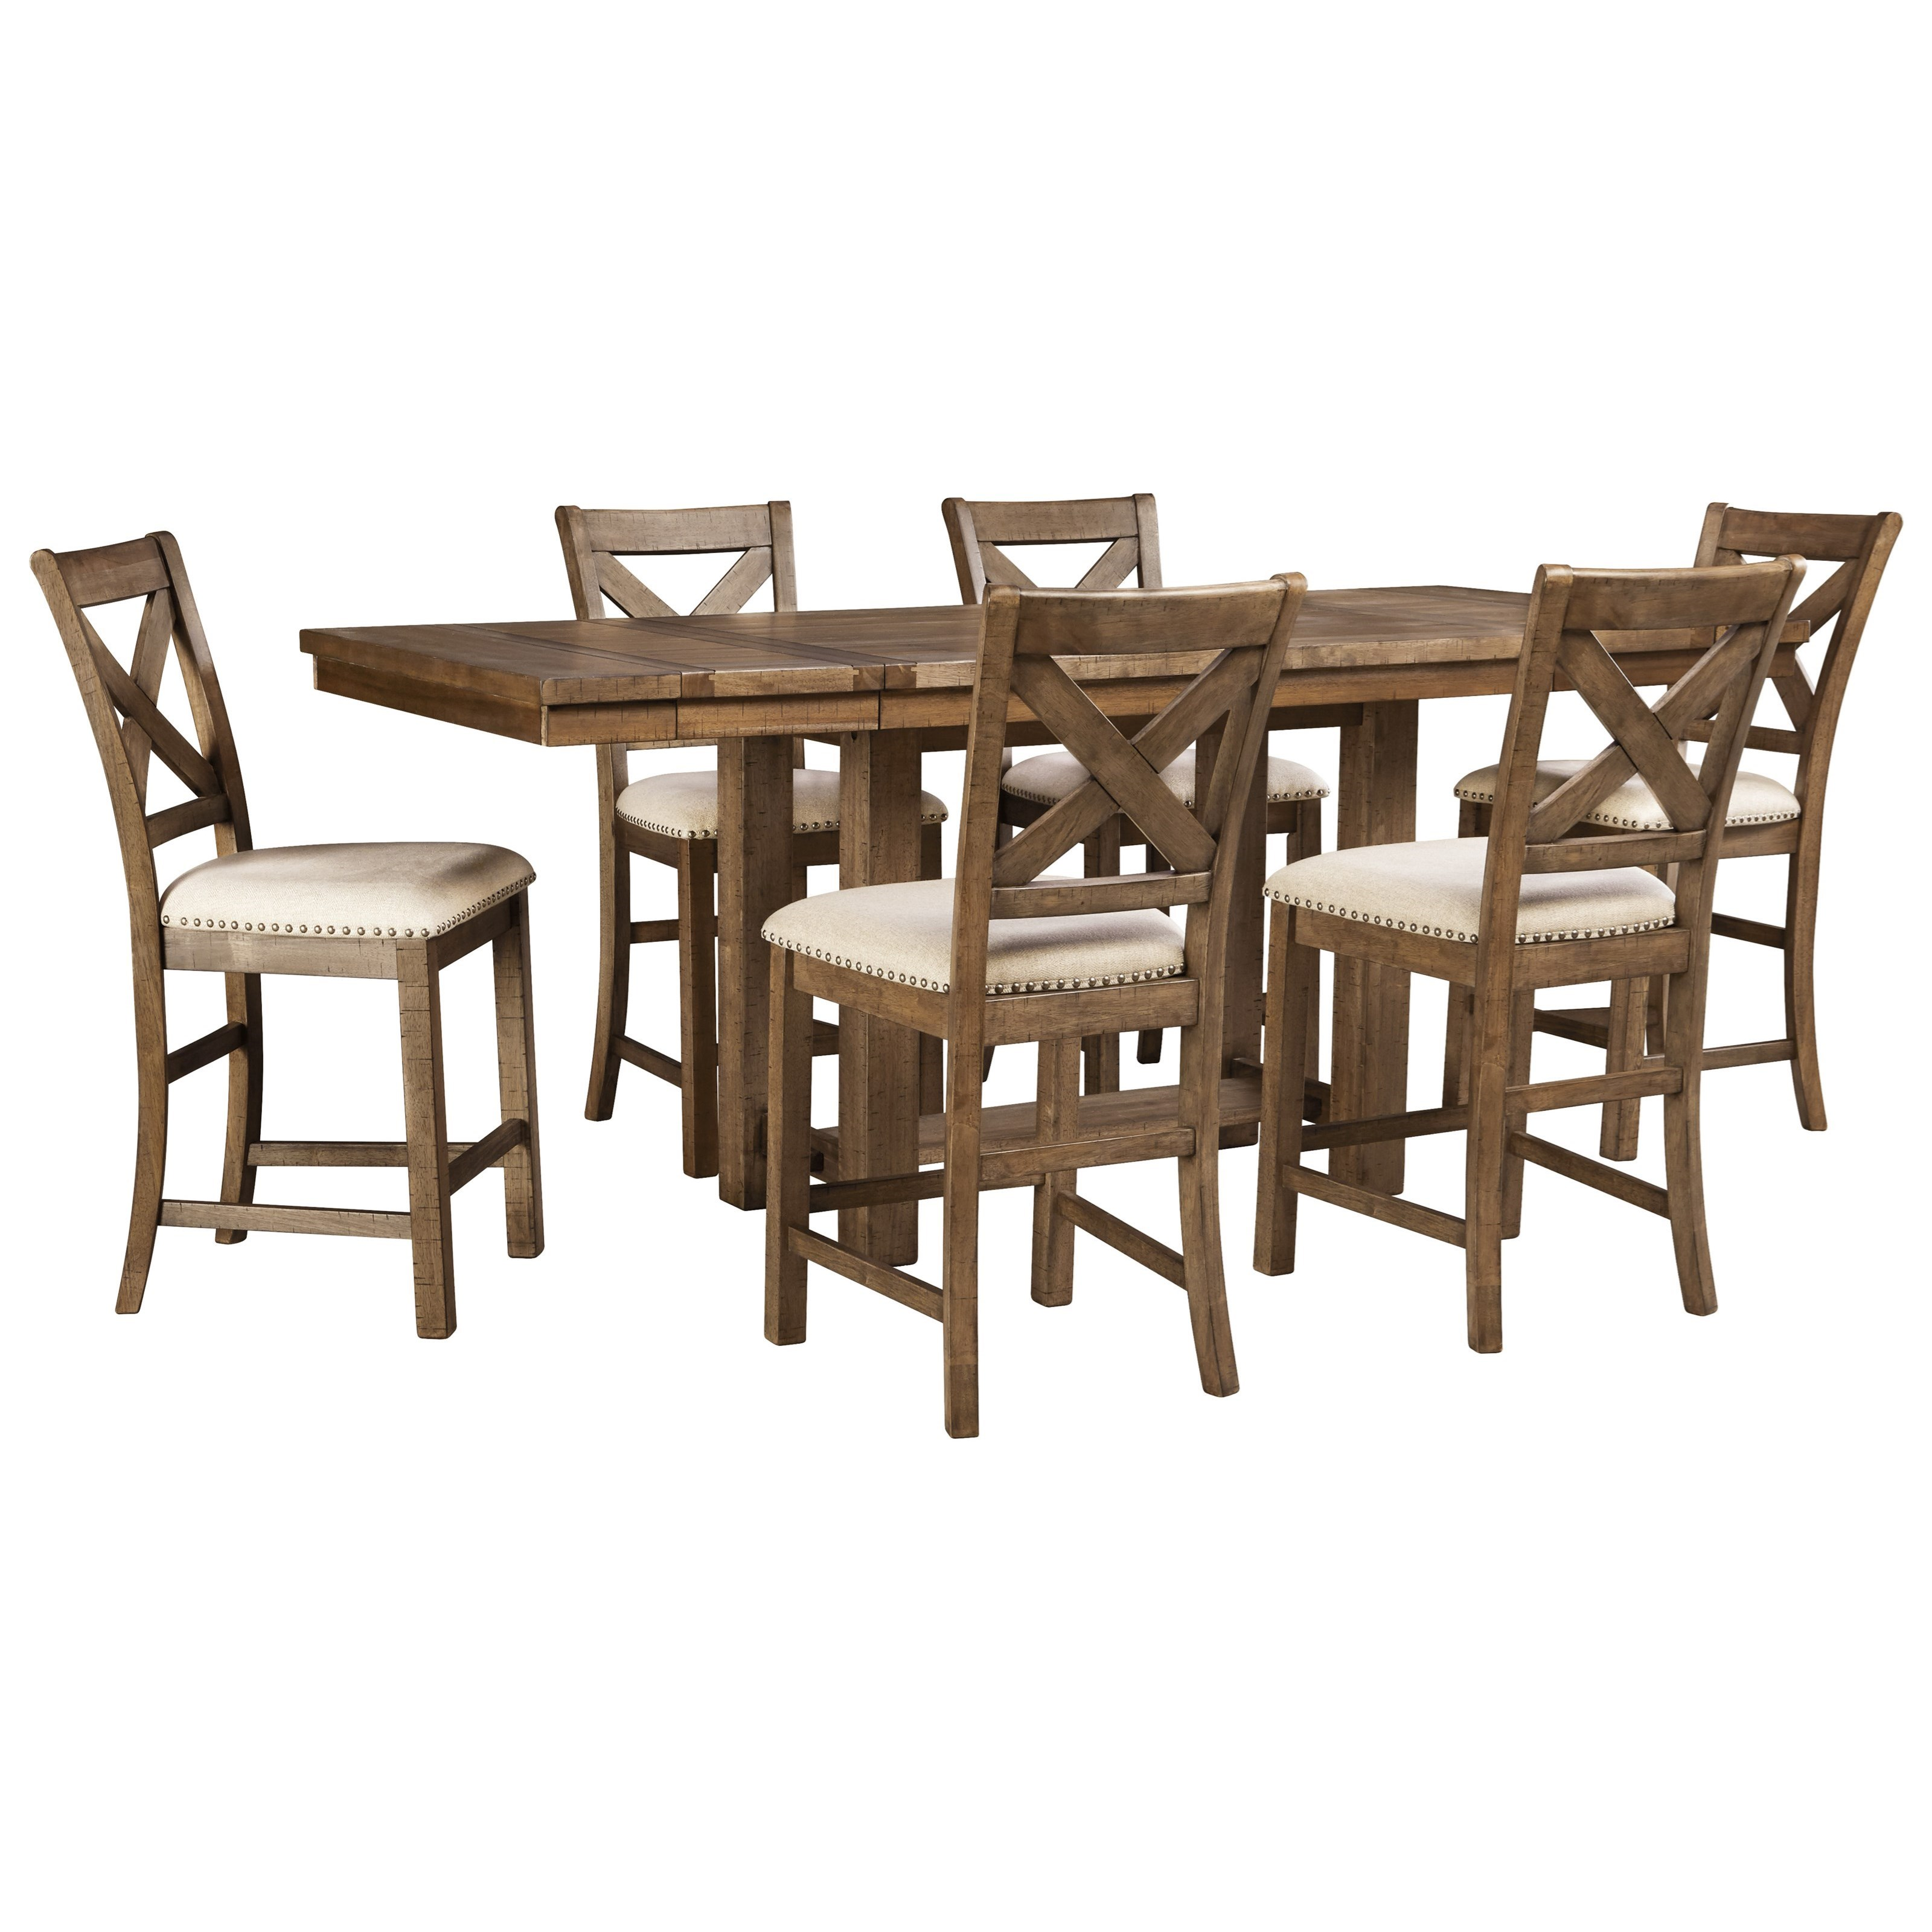 Moriville 7-Piece Rectangular Ext Counter Table Set by Signature Design by Ashley at Zak's Warehouse Clearance Center